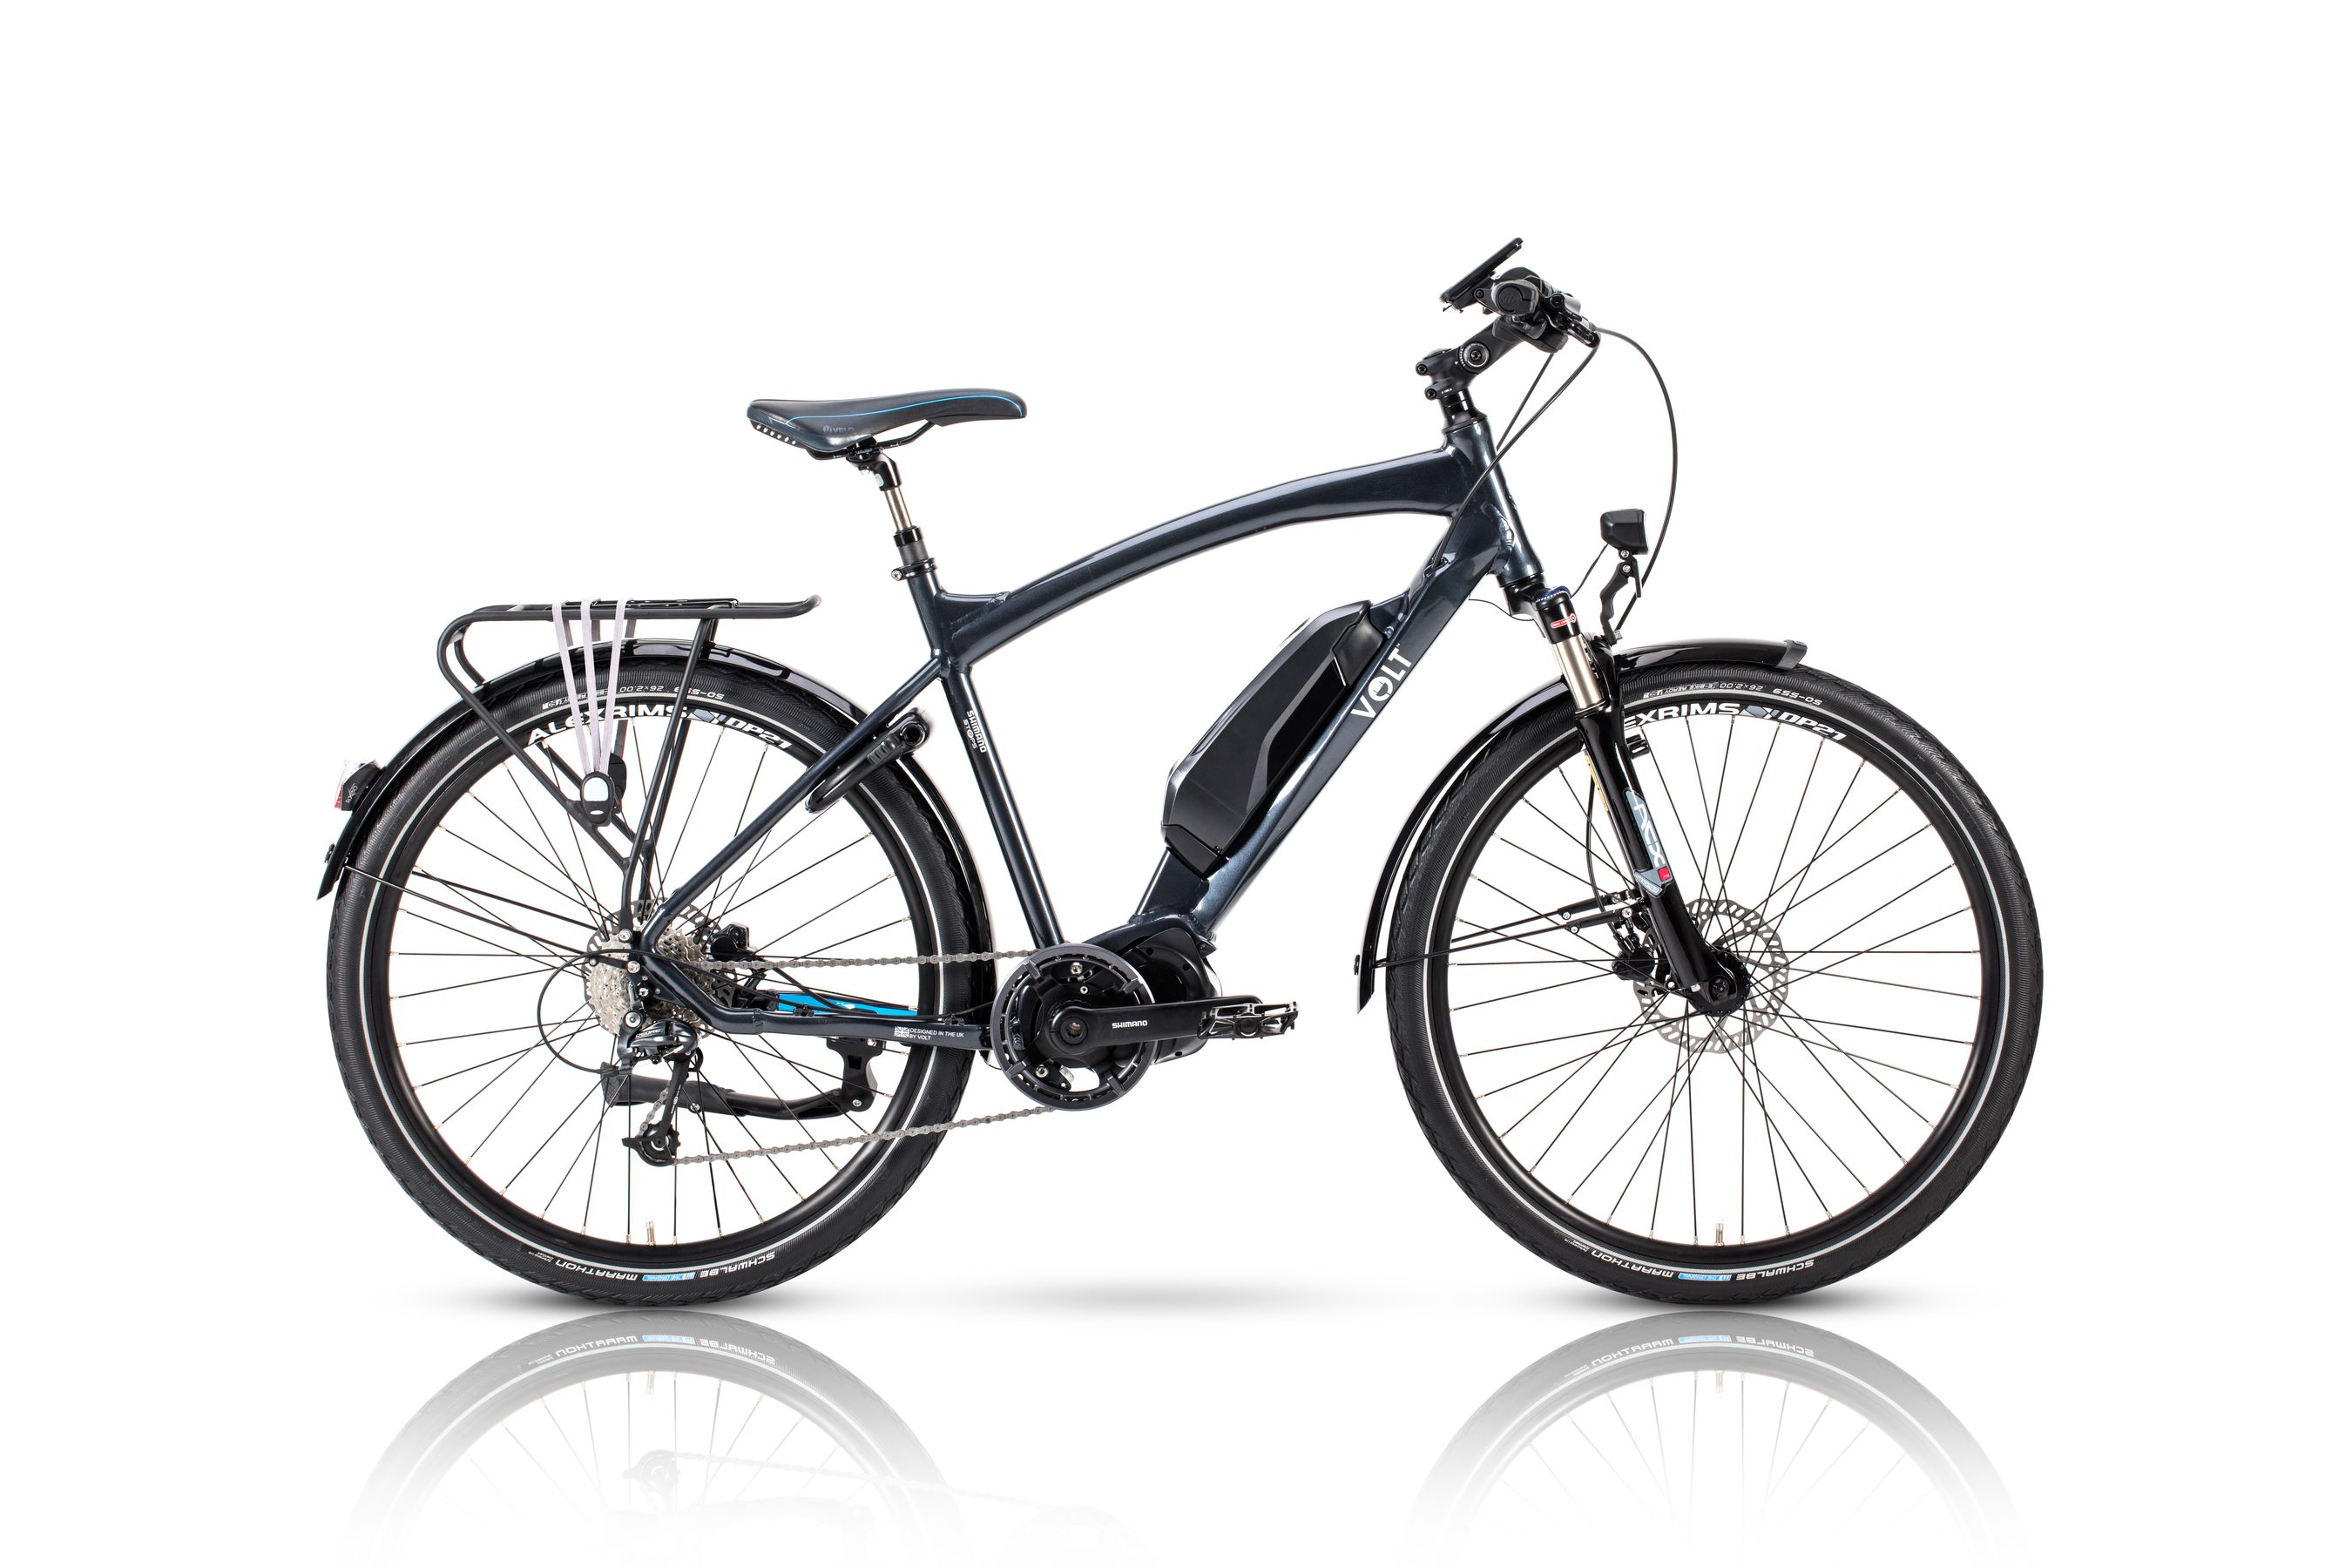 Connect 2020 Shimano STEPS e-bike from Volt